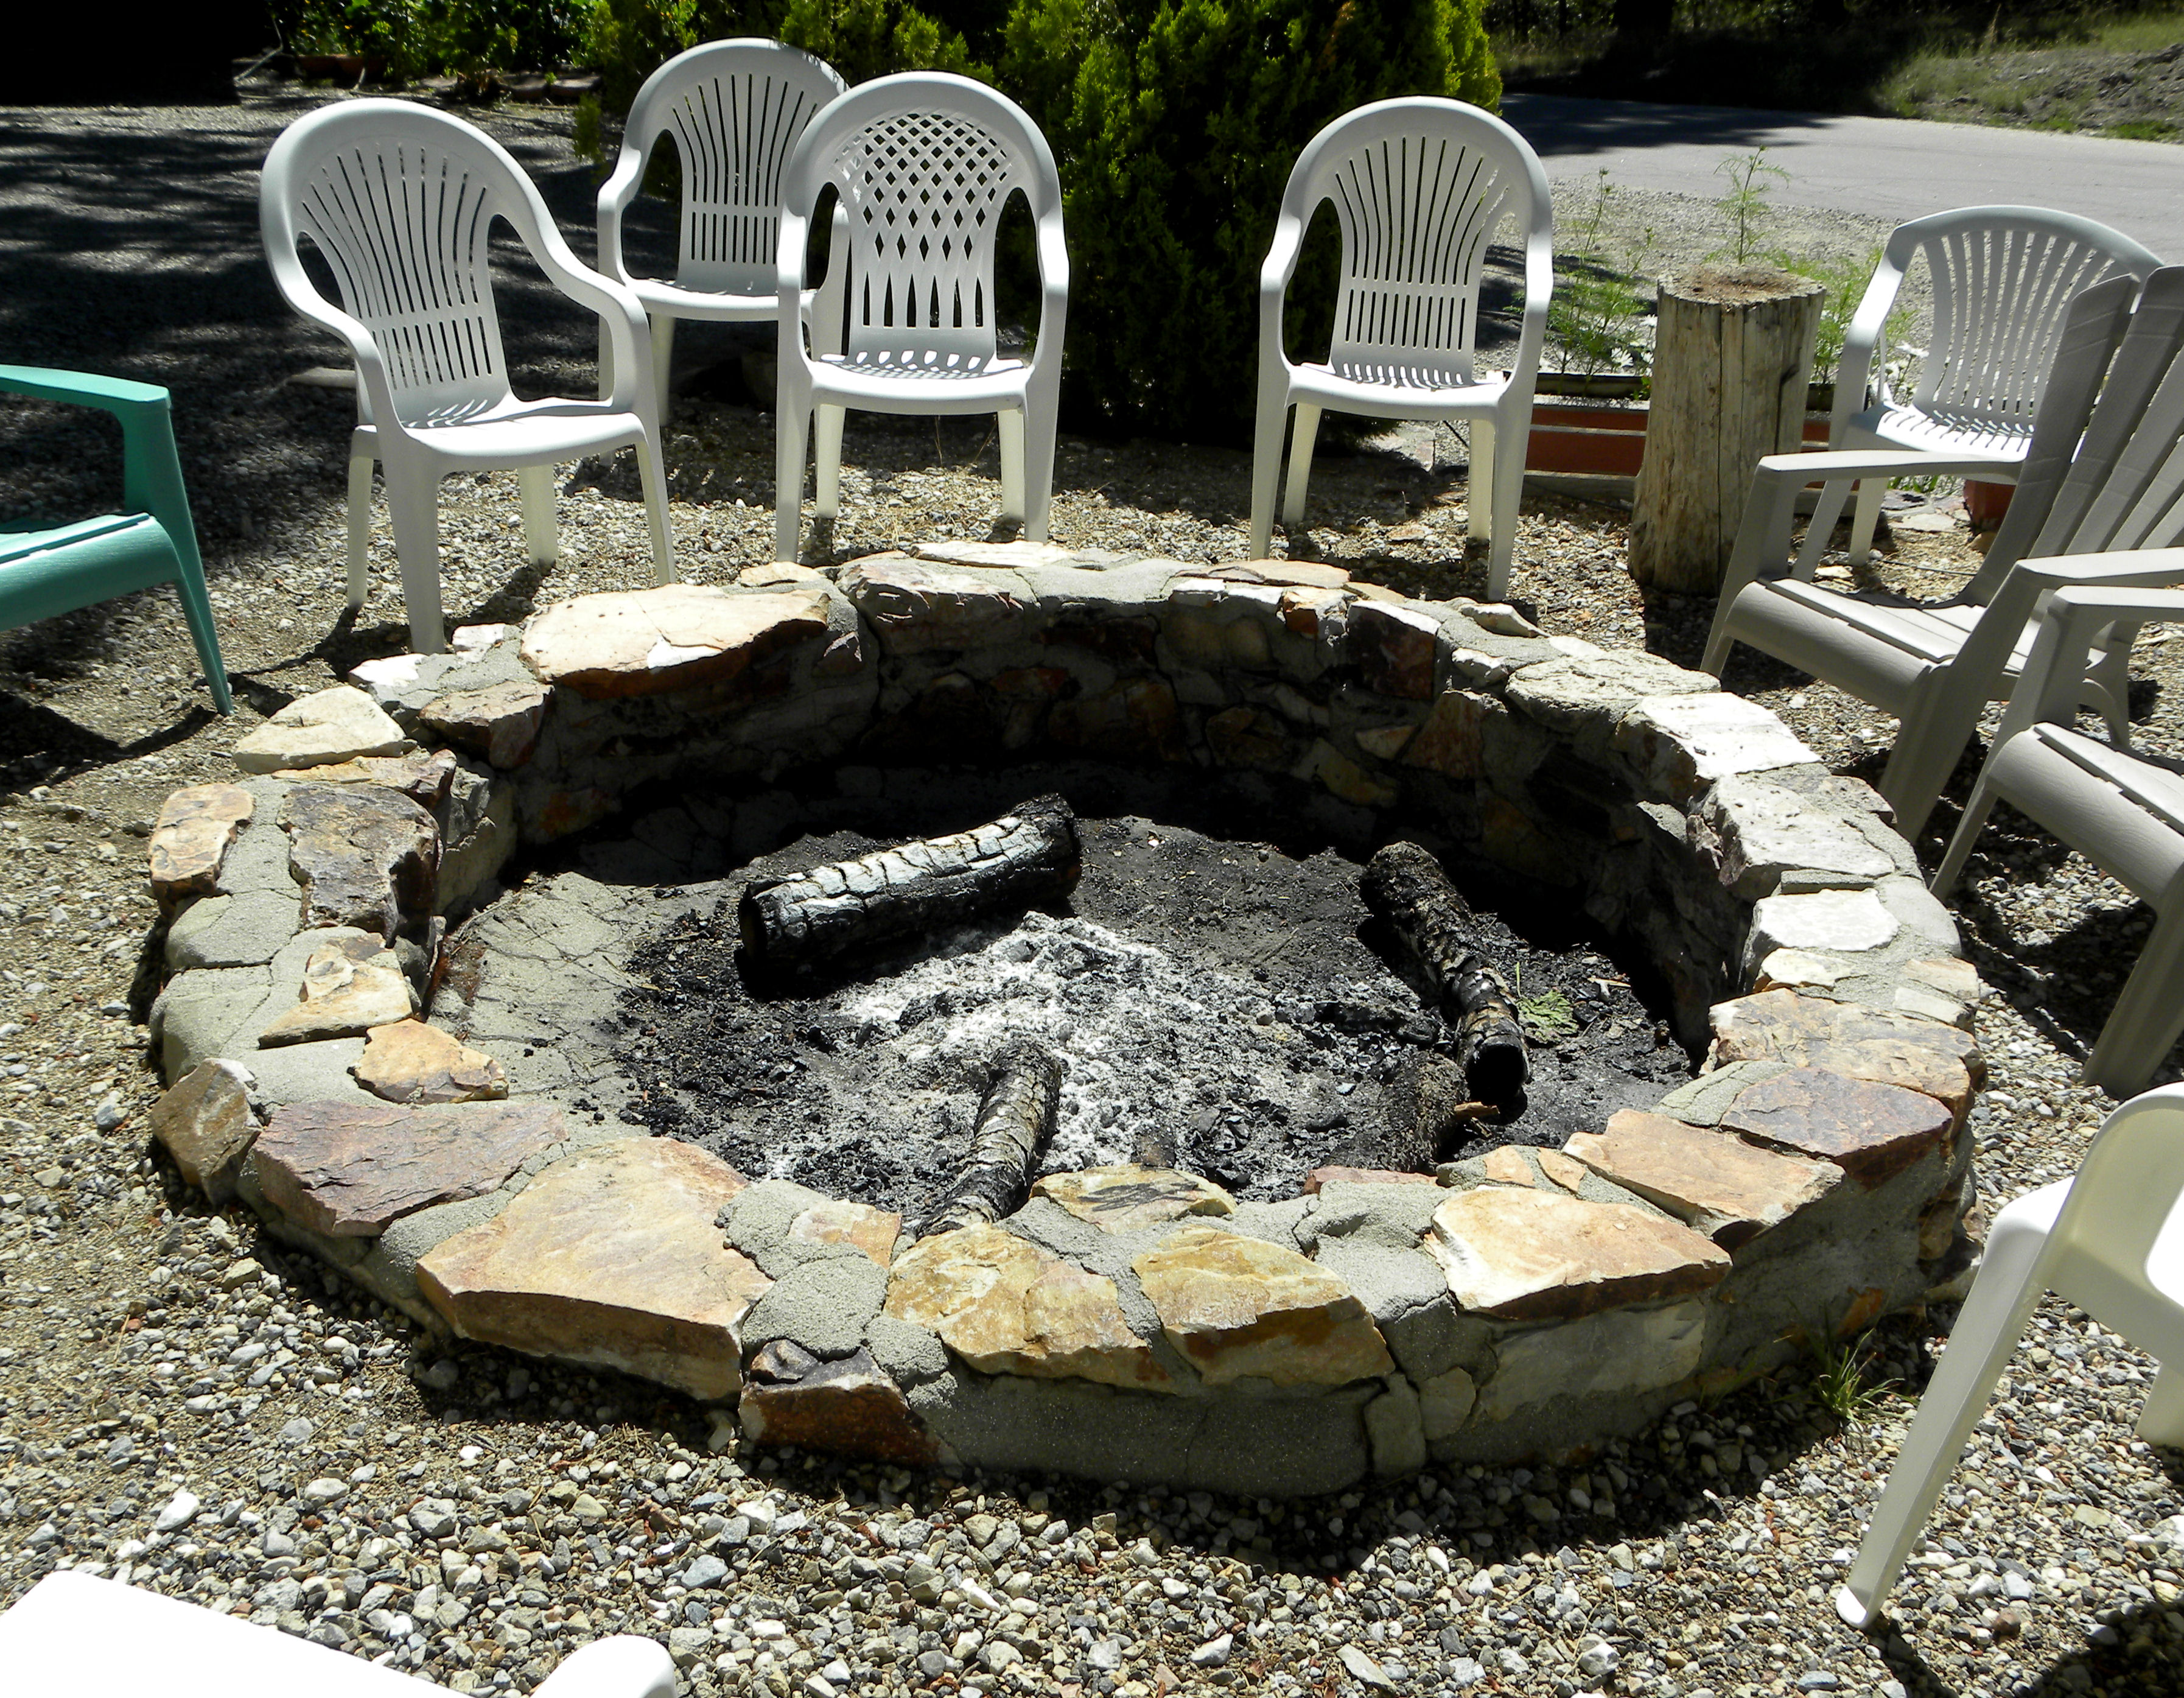 1000 images about back yard fire pits love it on for How to build a fire ring with rocks